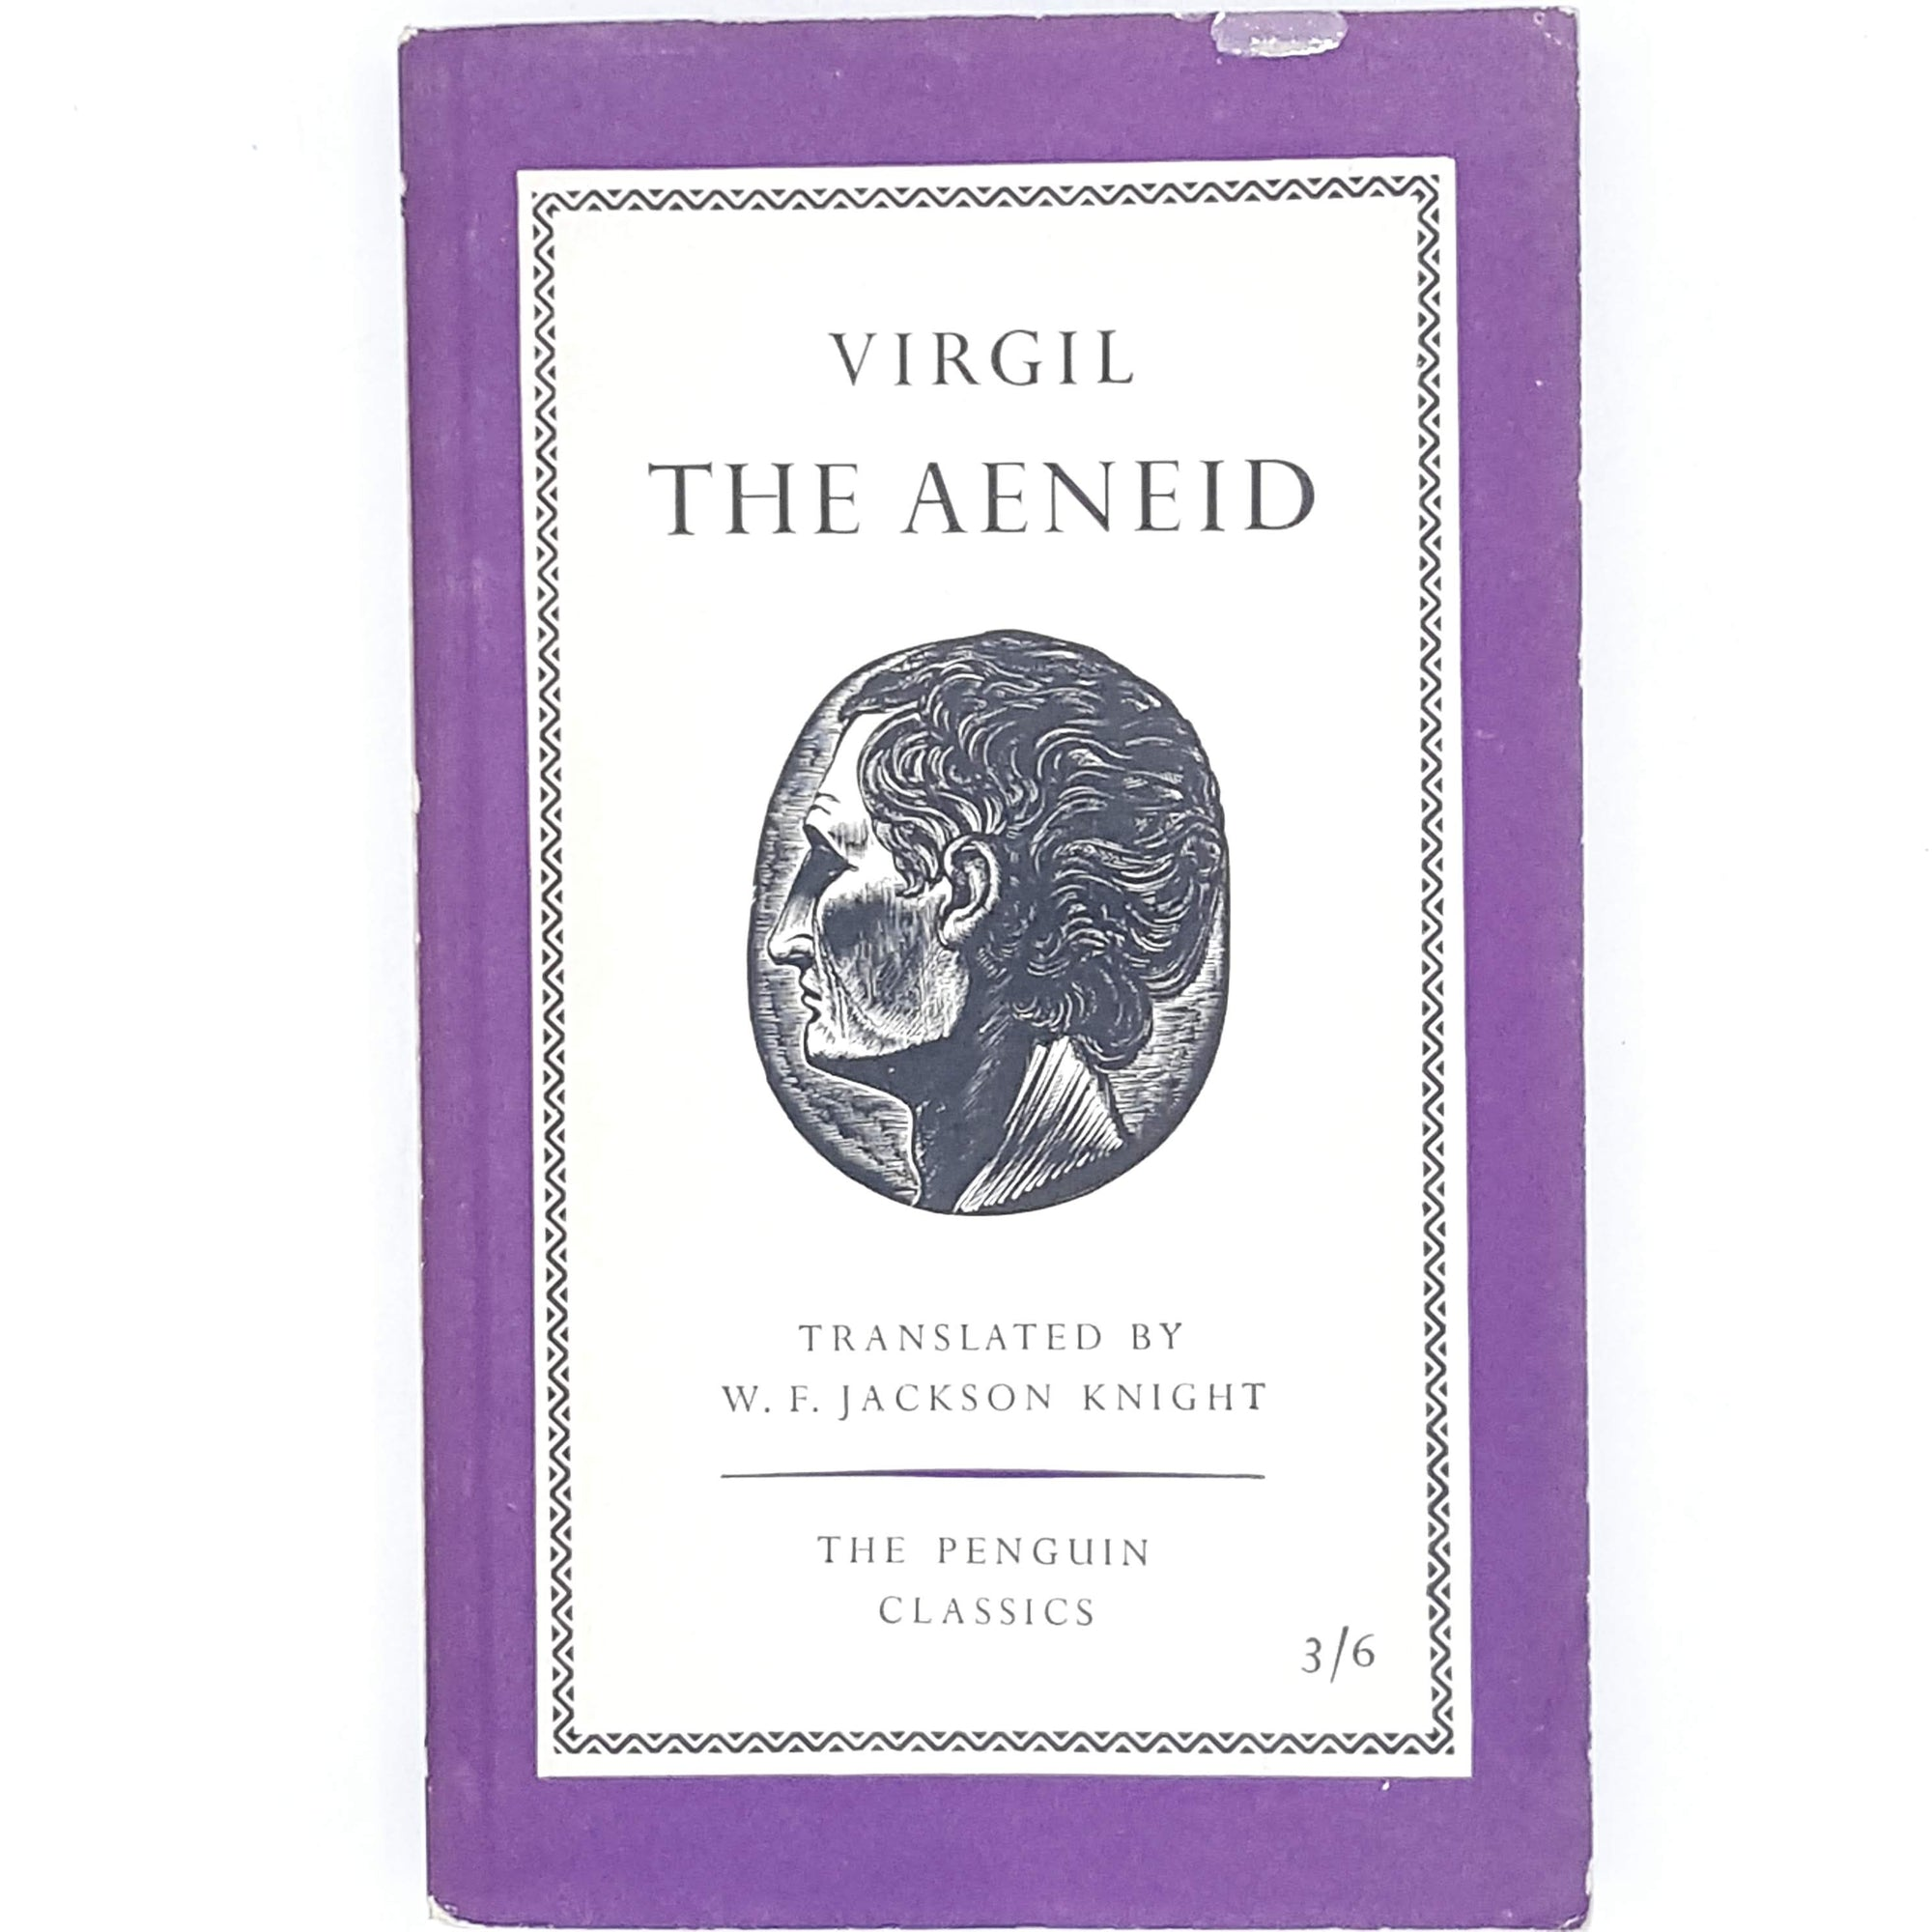 Virgil's The Aeneid 1960